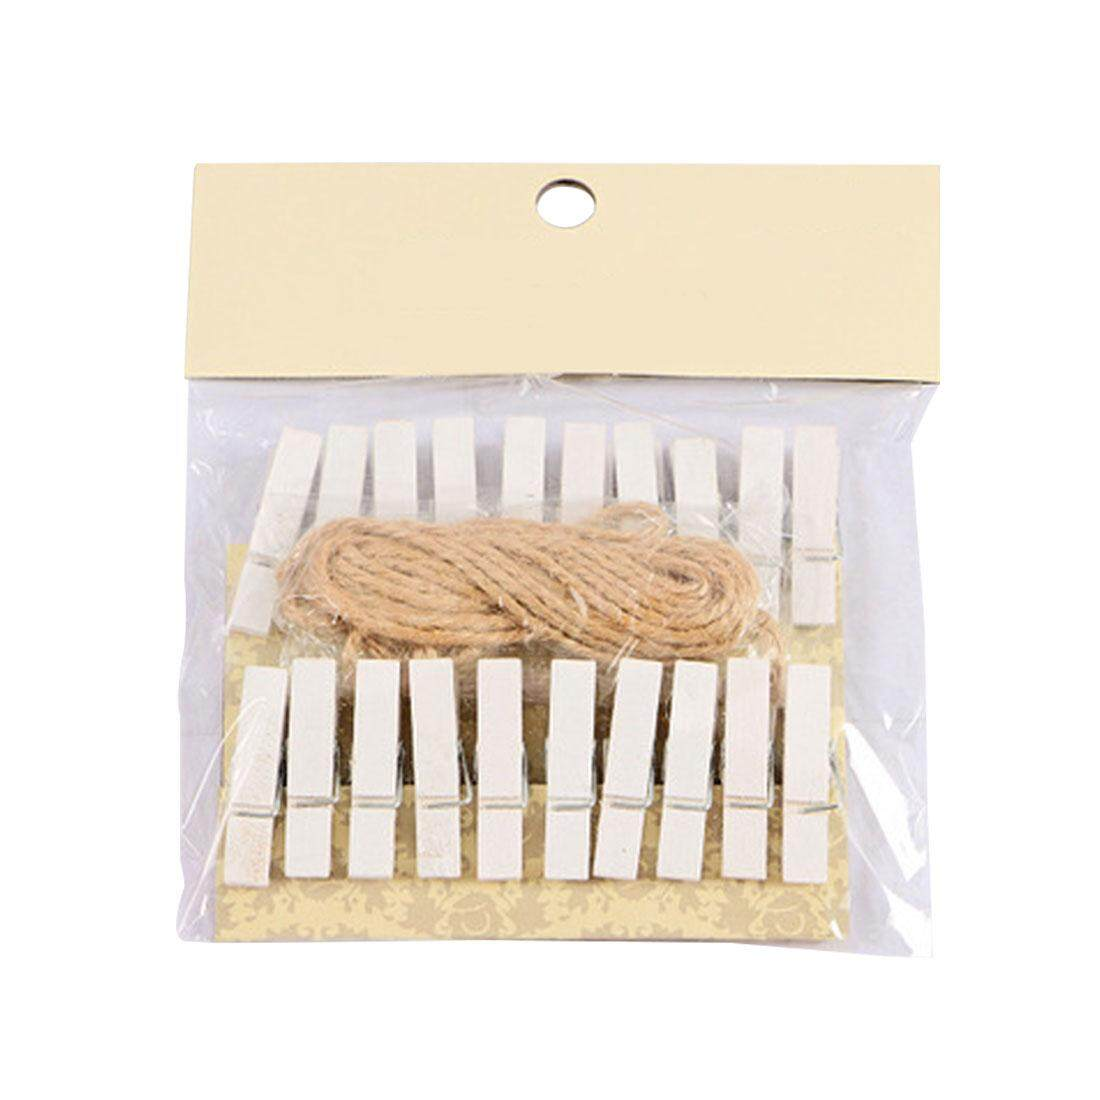 20pcs Mini Wooden Decorative Color Clip Wooden Clothespin Clips Photo Paper Clothes Clips Office Home Supplies